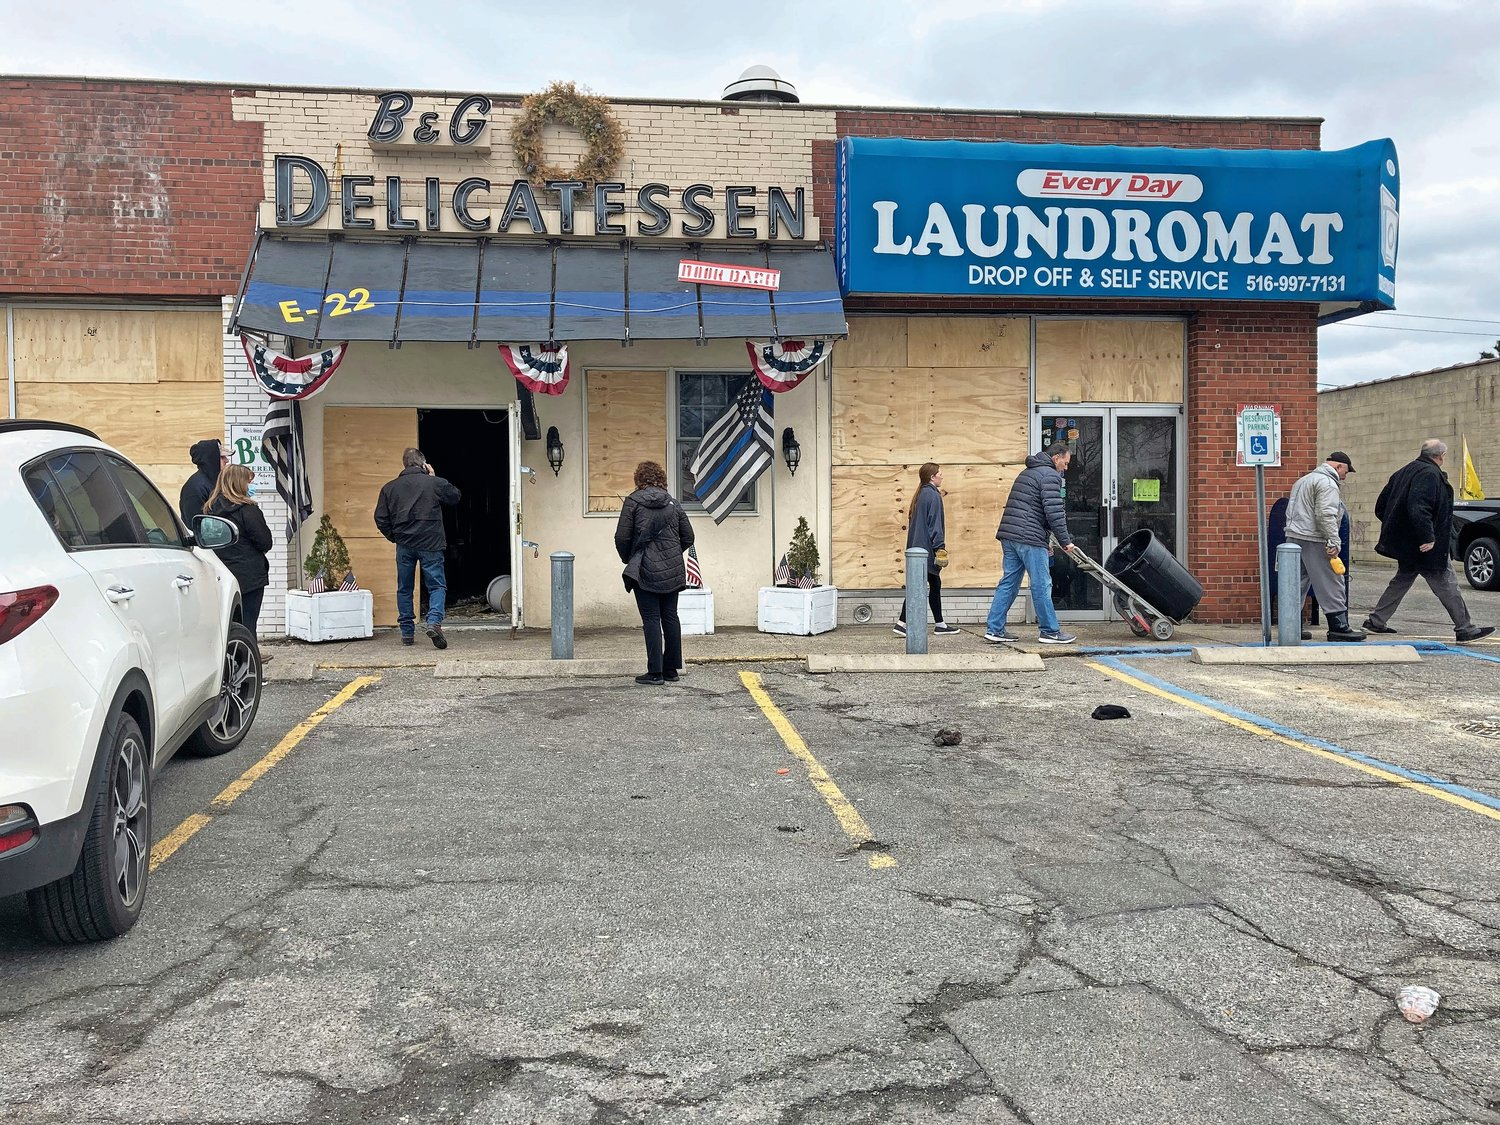 Five stores in the strip mall on Carman Avenue in Salisbury, including B&G Delicatessen, were damaged in a late-night fire on March 16.